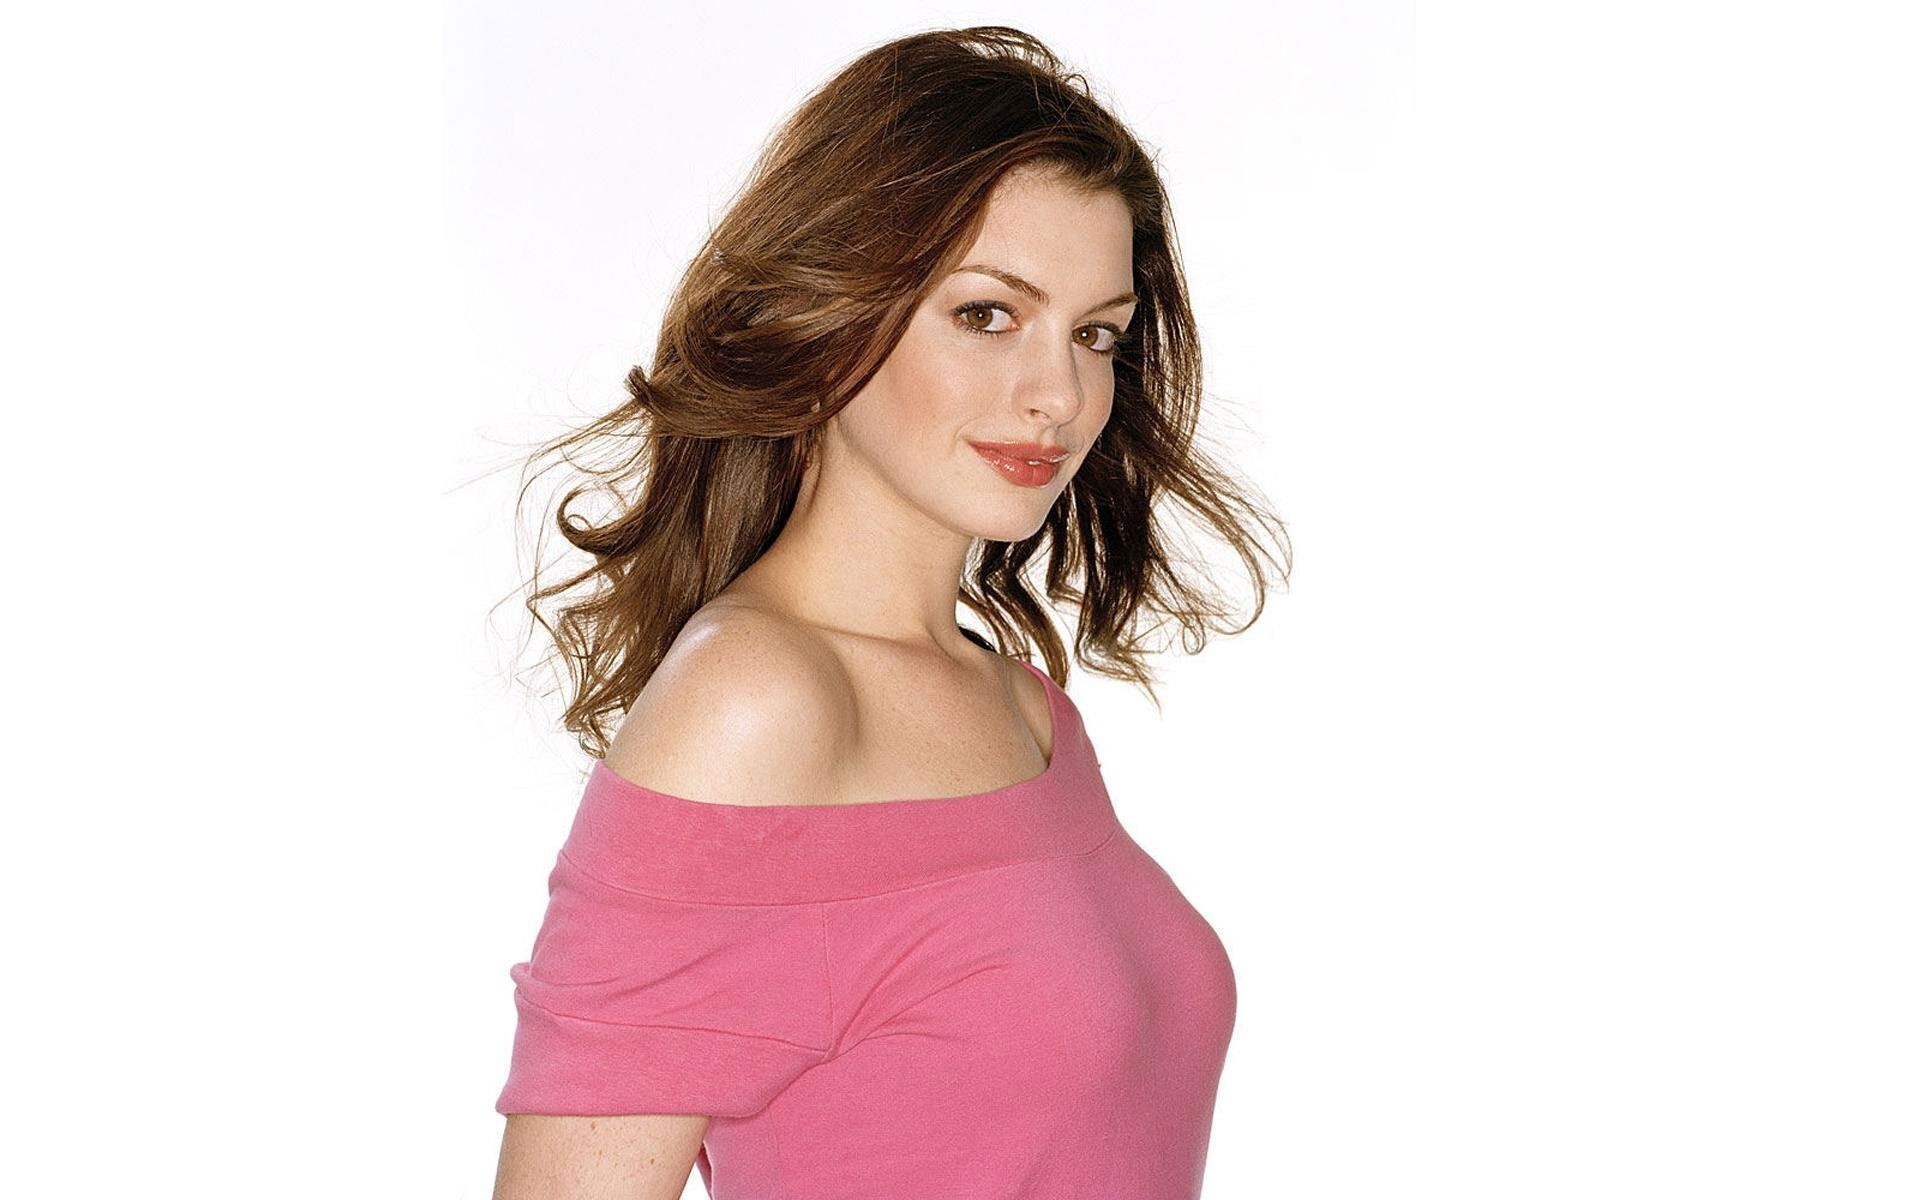 Anne hathaway hollywood actress celebrity wallpapers hd - Hollywood actress hd wallpaper ...